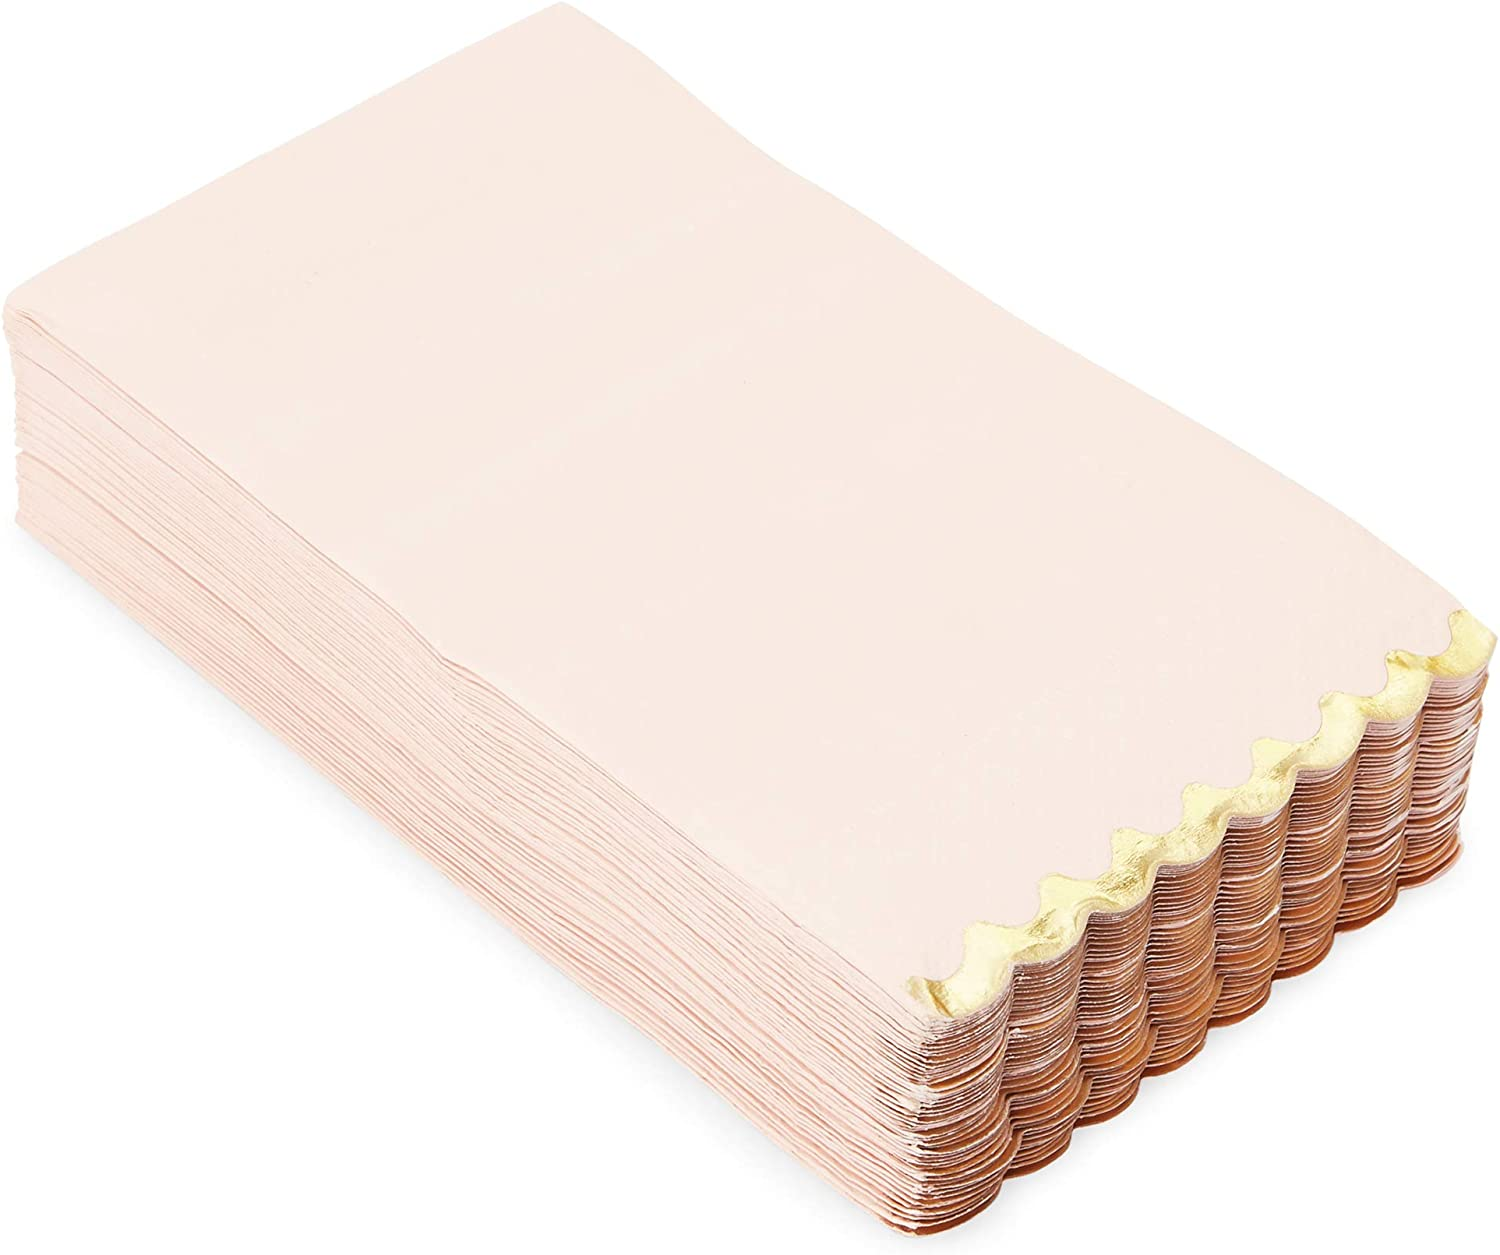 Bright Pink Scalloped Paper Napkins with Gold Foil Edges (4.4 x 7.8 In, 50 Pack)